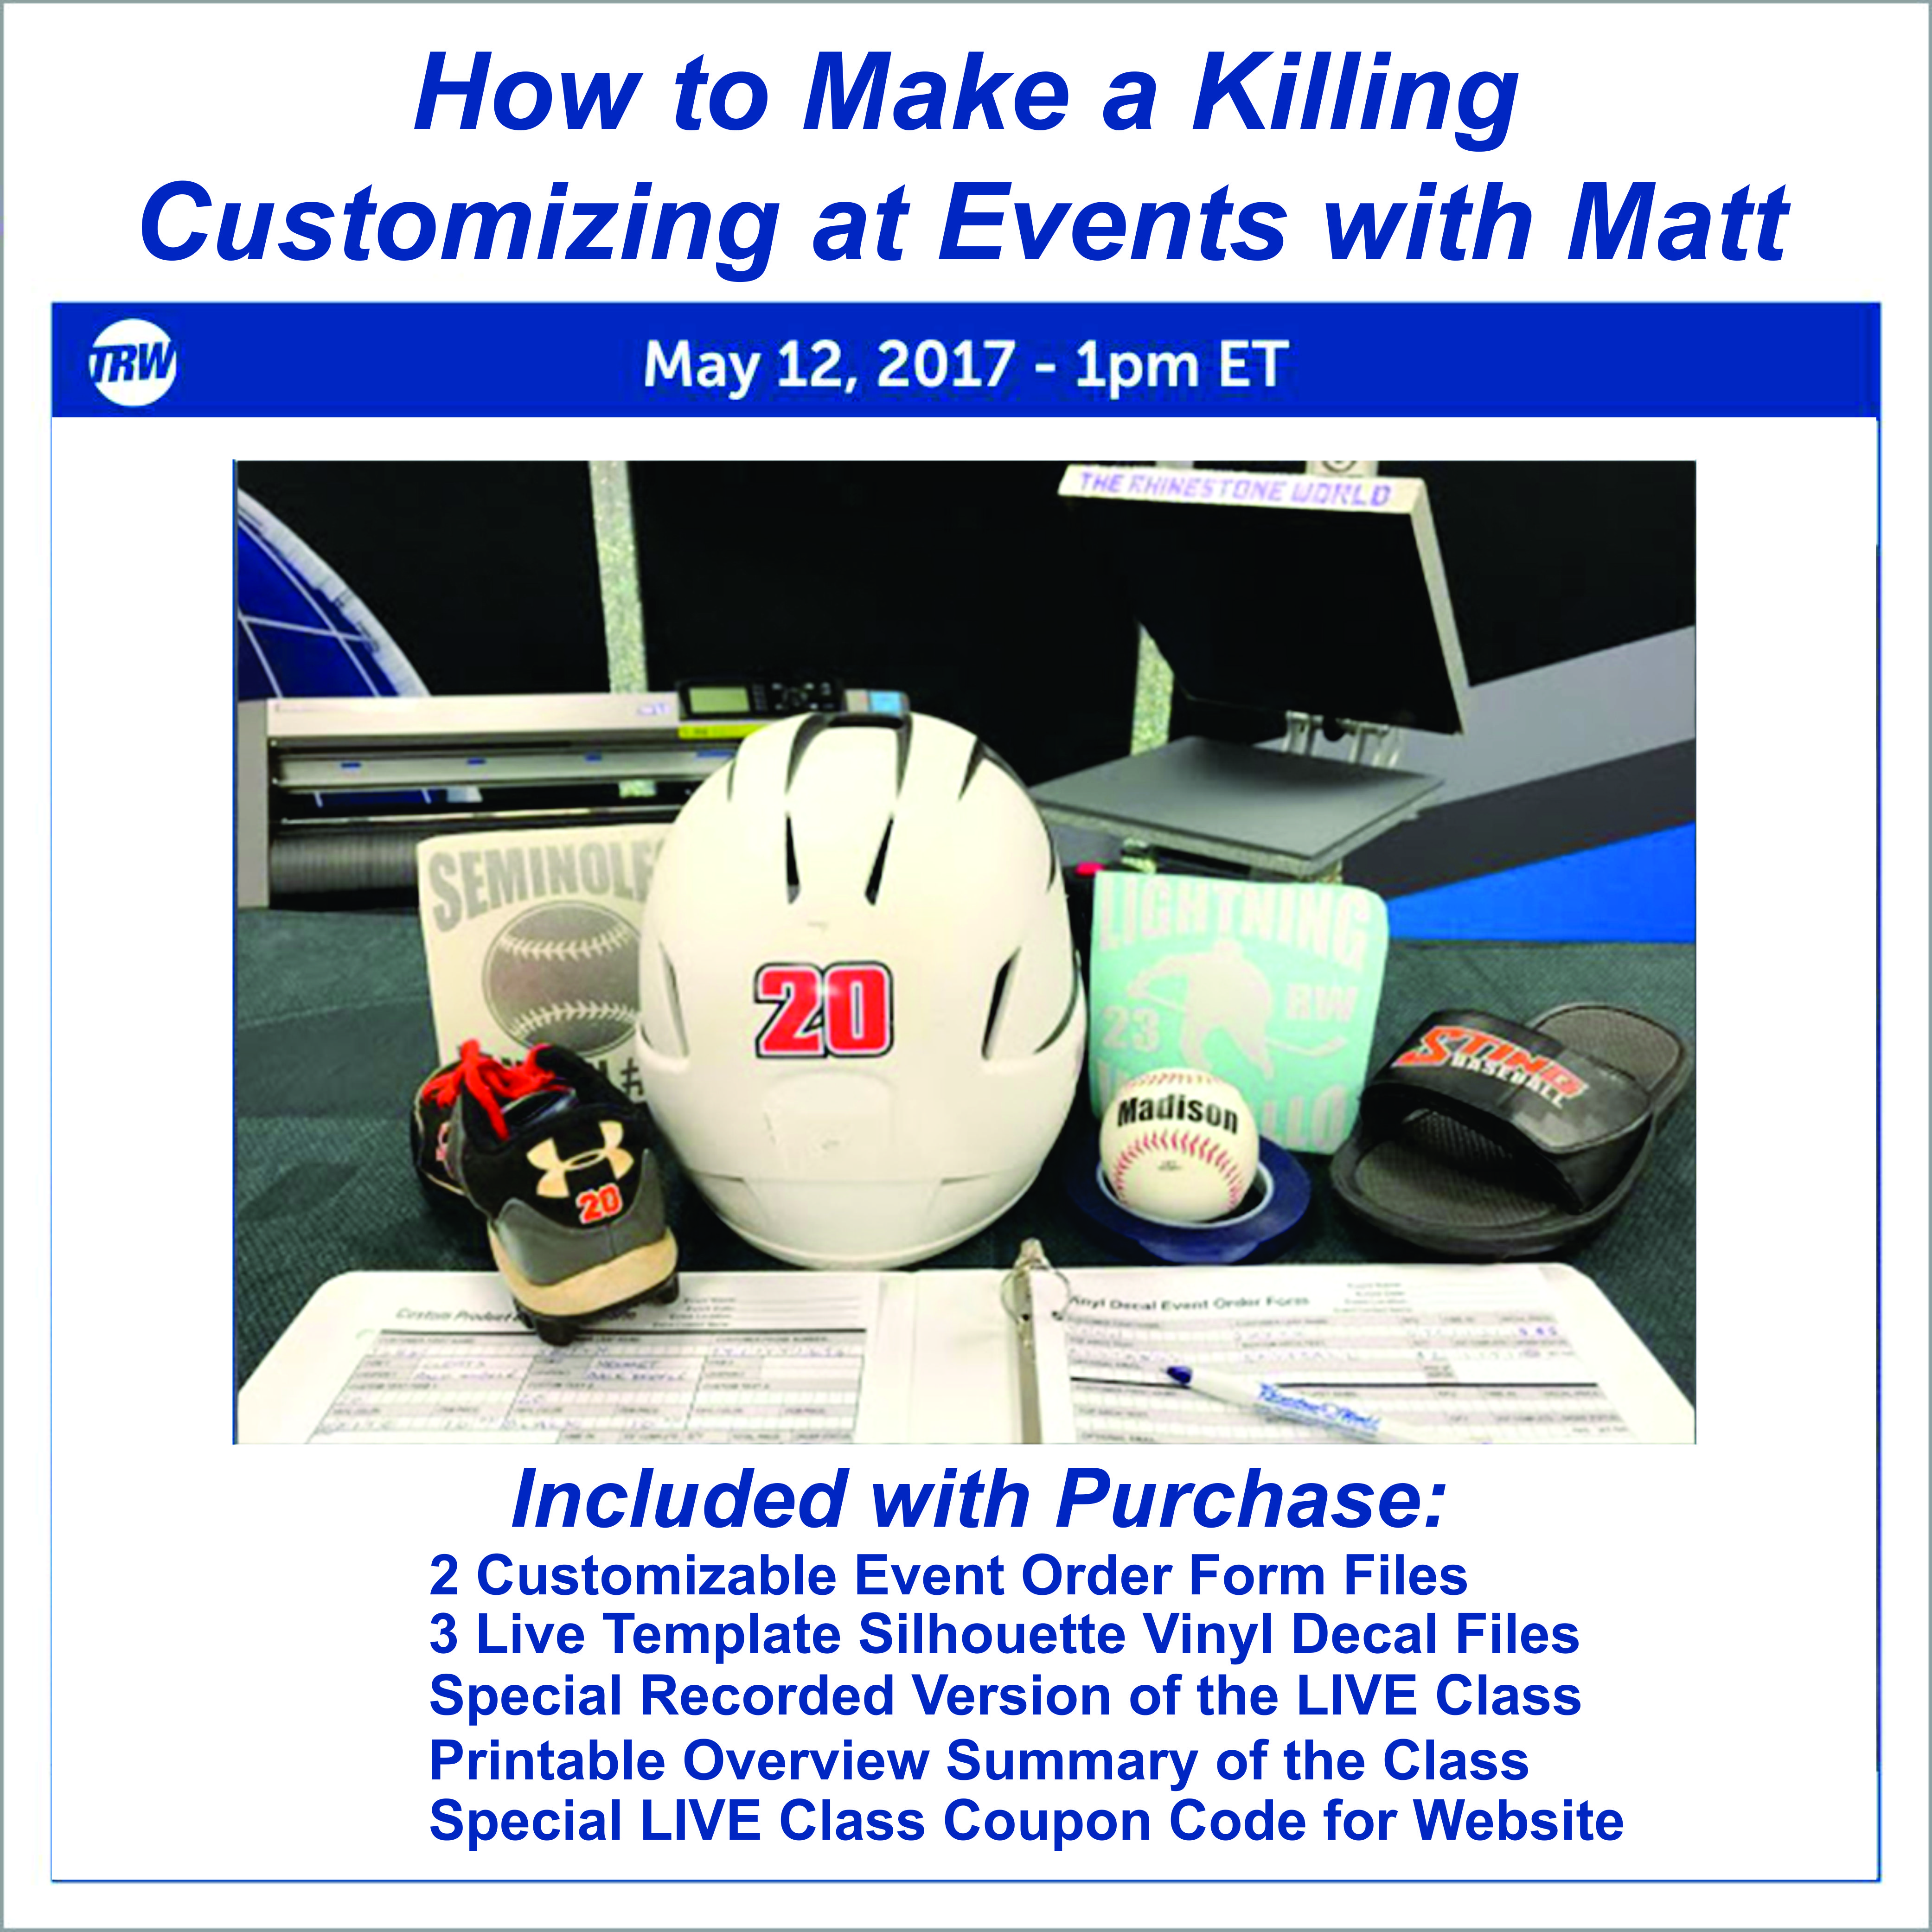 How to Make a Killing Customizing at Events - May 12th, 2017